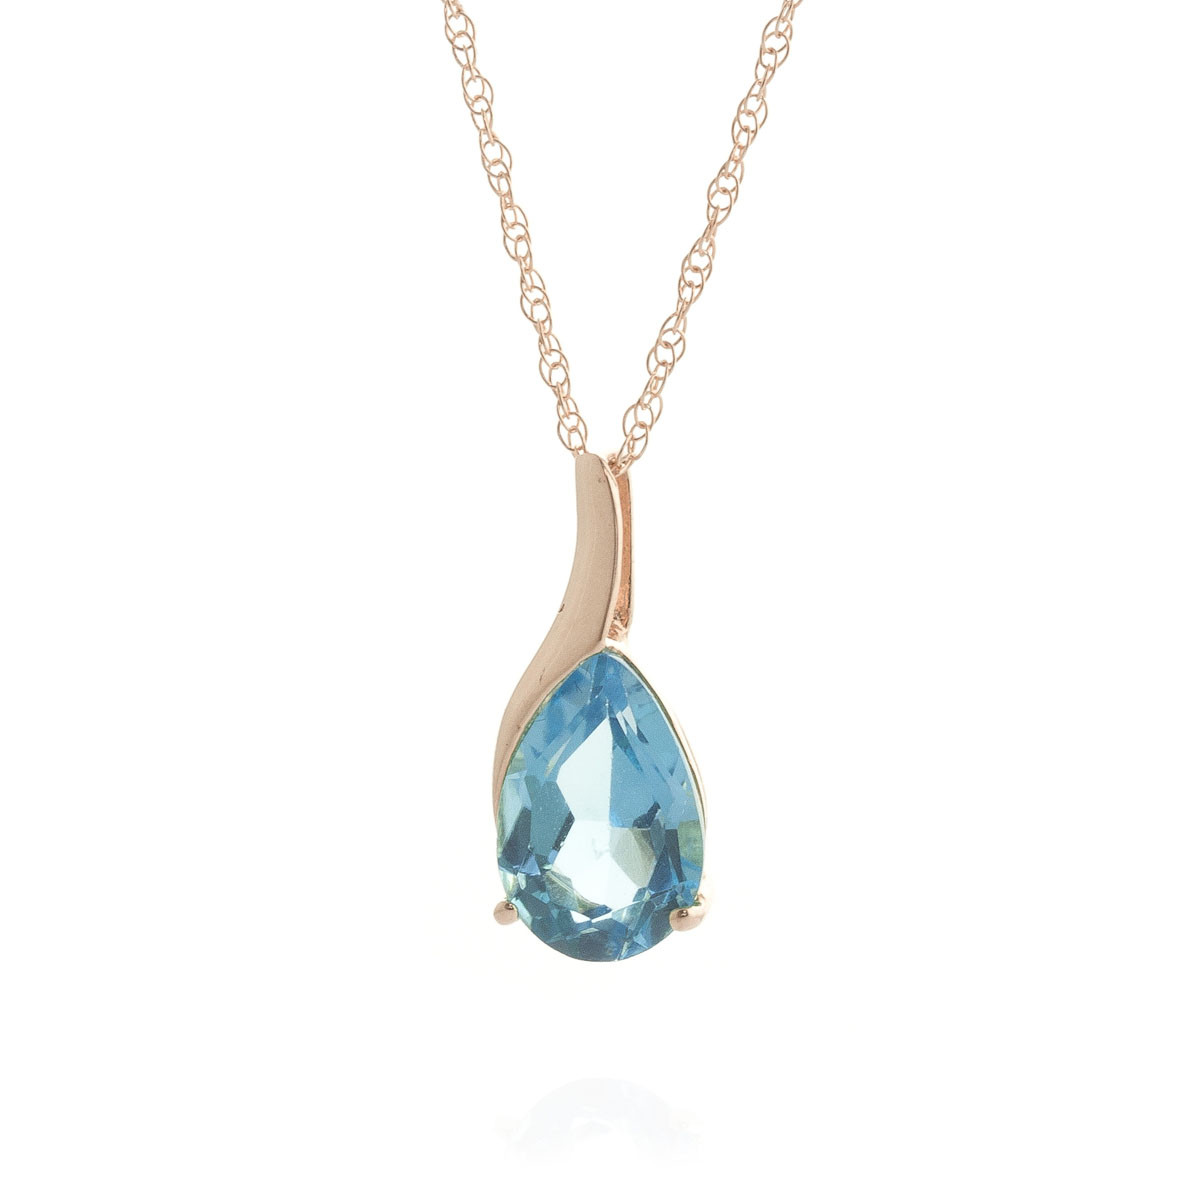 Blue Topaz Tuscany Pendant Necklace 4.7 ct in 9ct Rose Gold